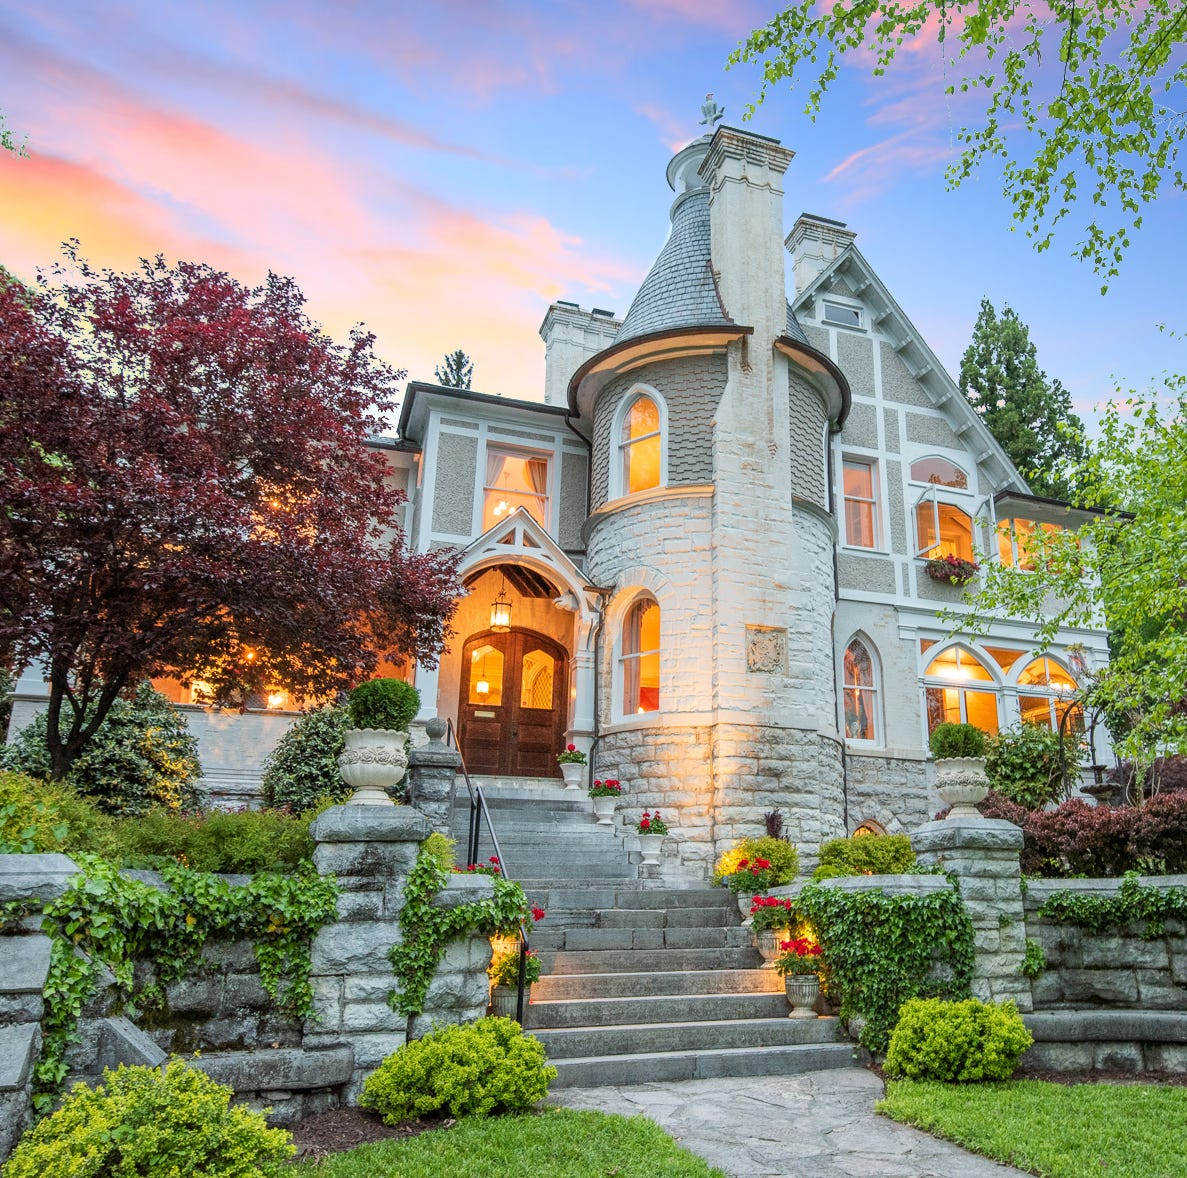 Staunton historic Queen Anne Victorian is castle-like and costs over $1 million — On the market